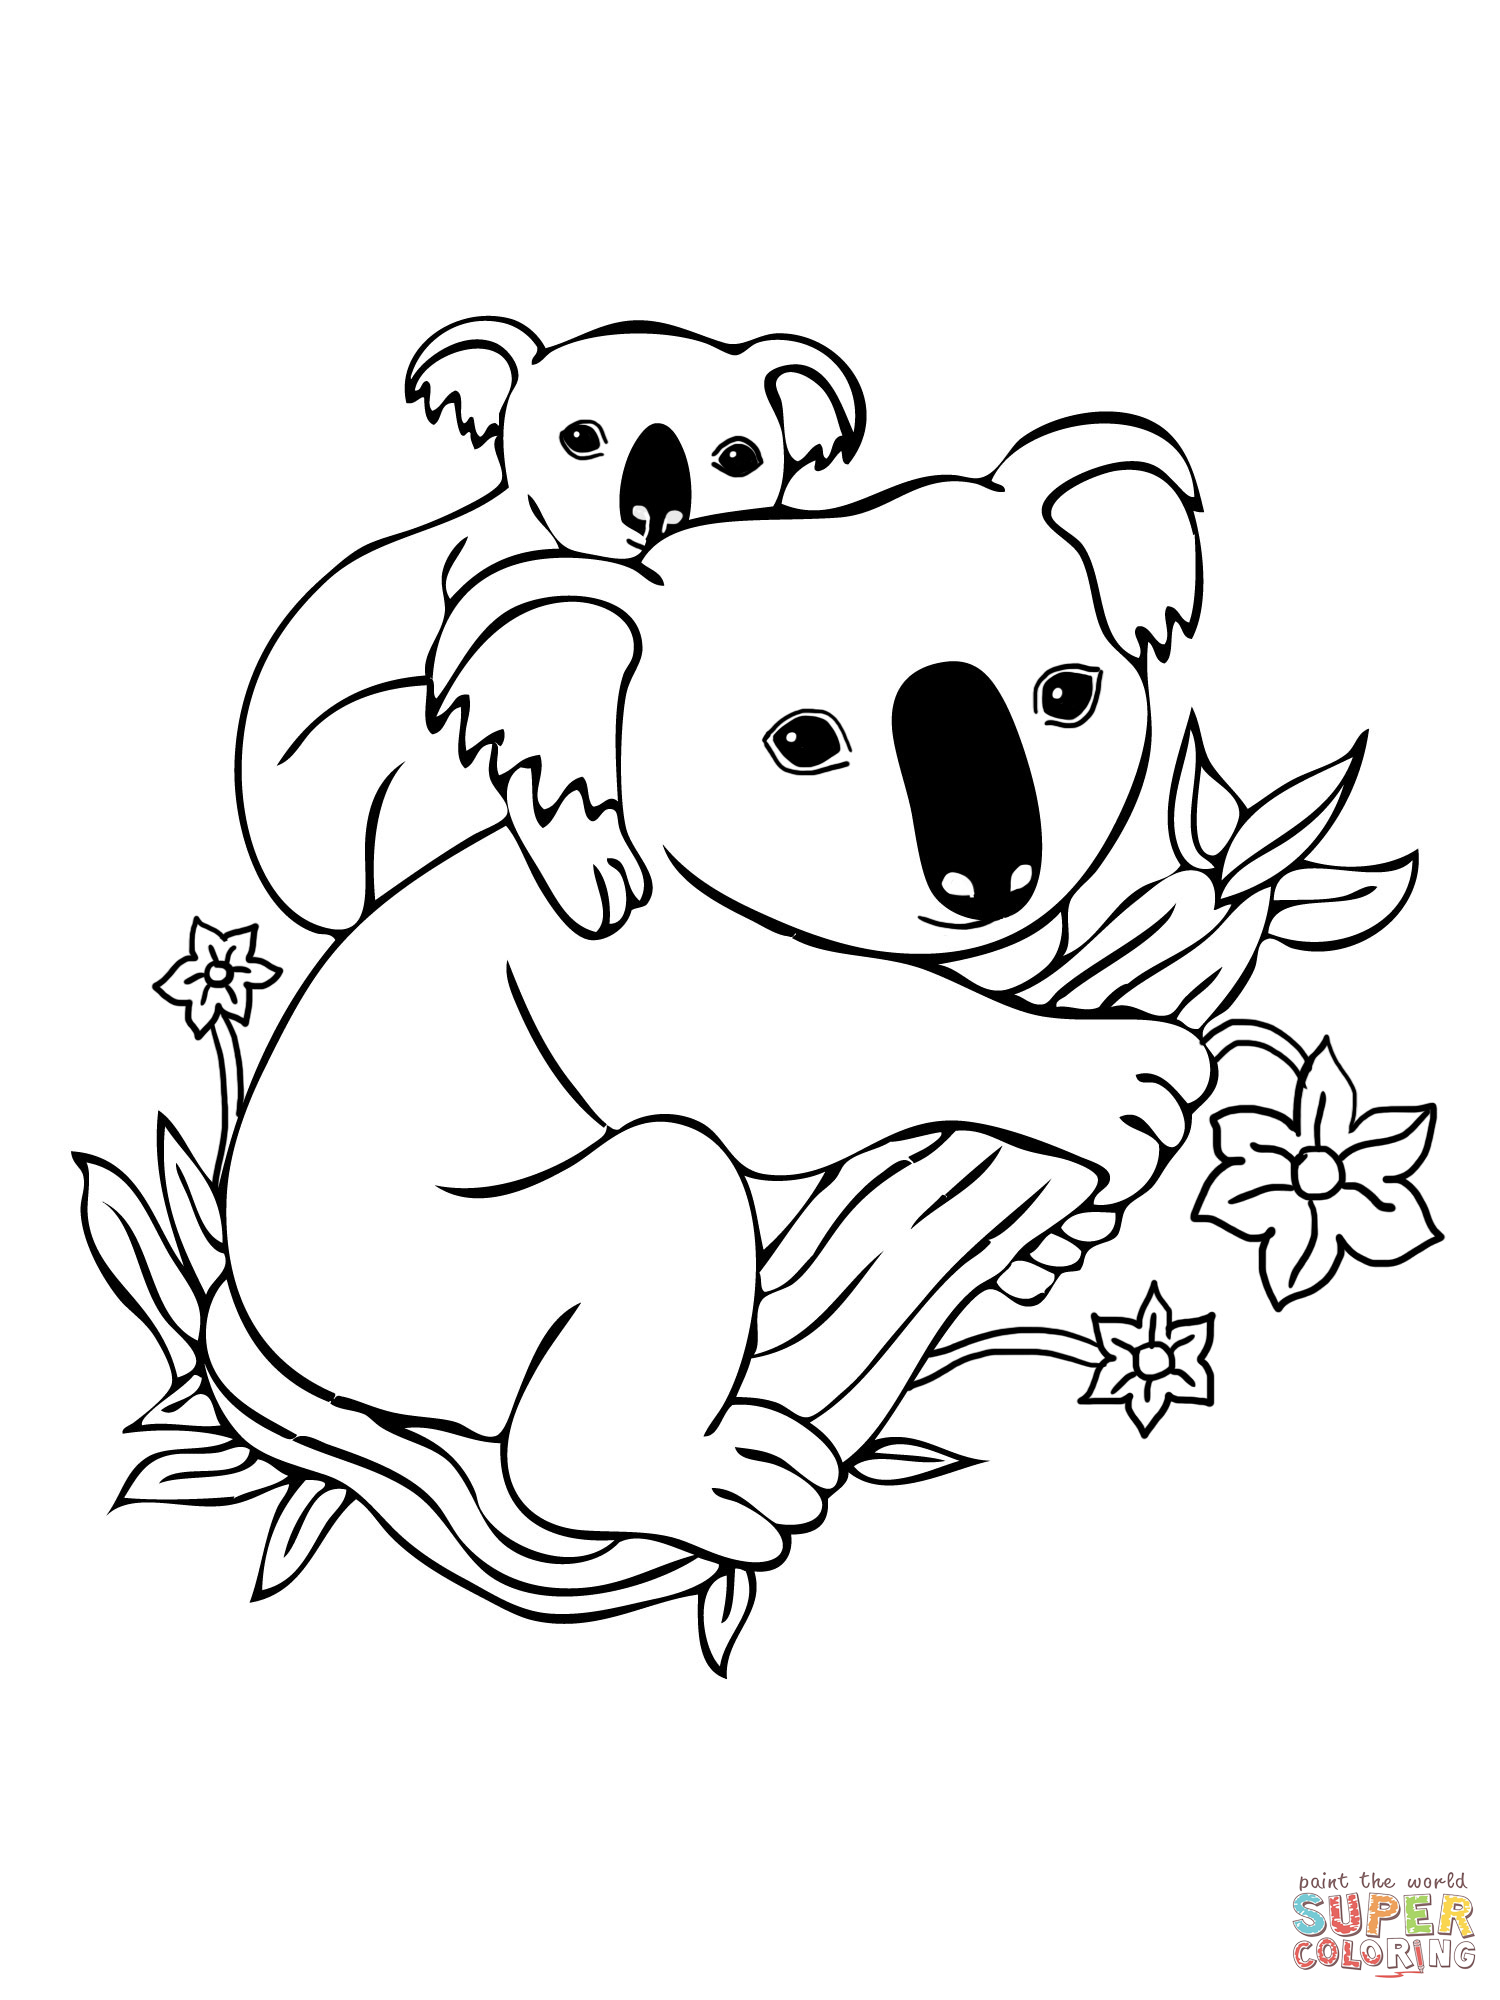 Koala_Coloring_Pages_03